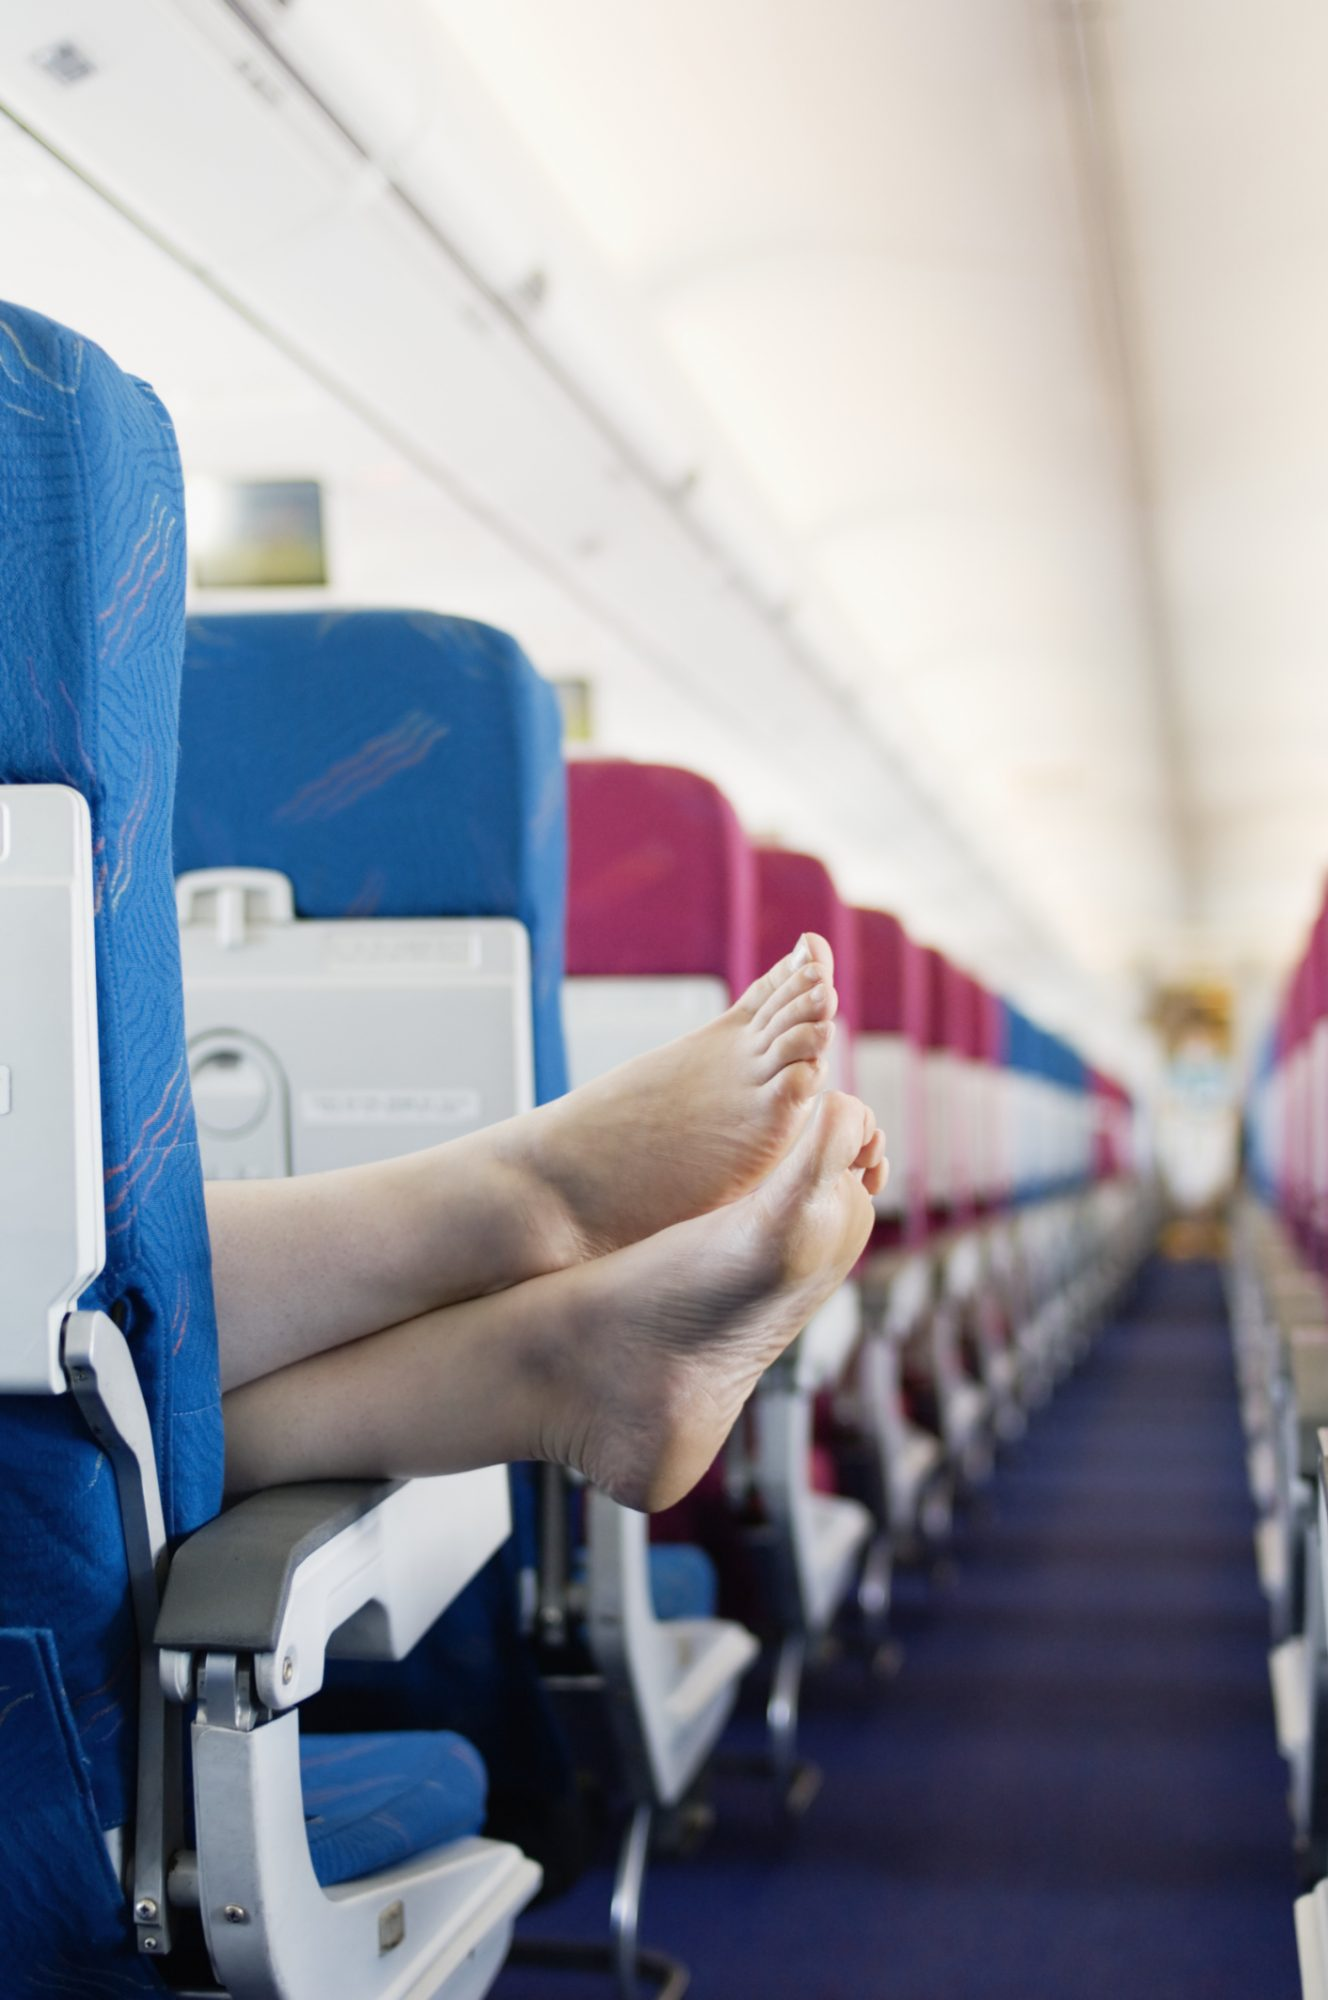 expedia-airplane-etiquette-study